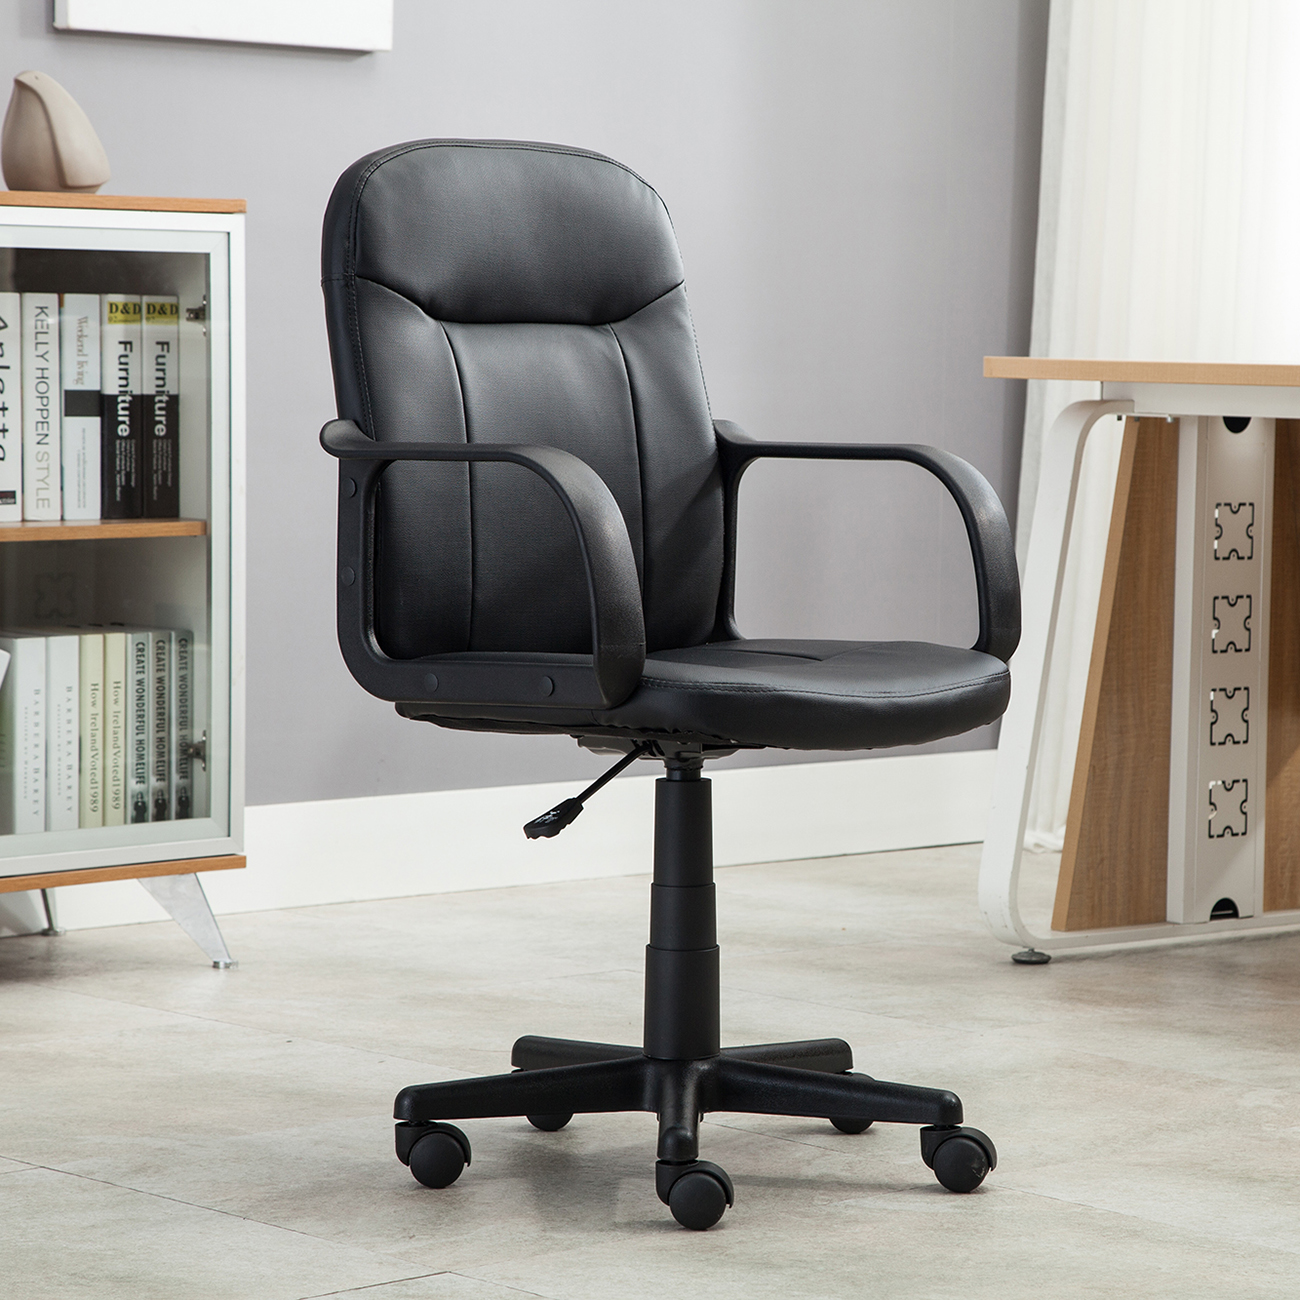 Black Modern Office Executive Chair PU Leather Computer Desk Task Hydraulic N